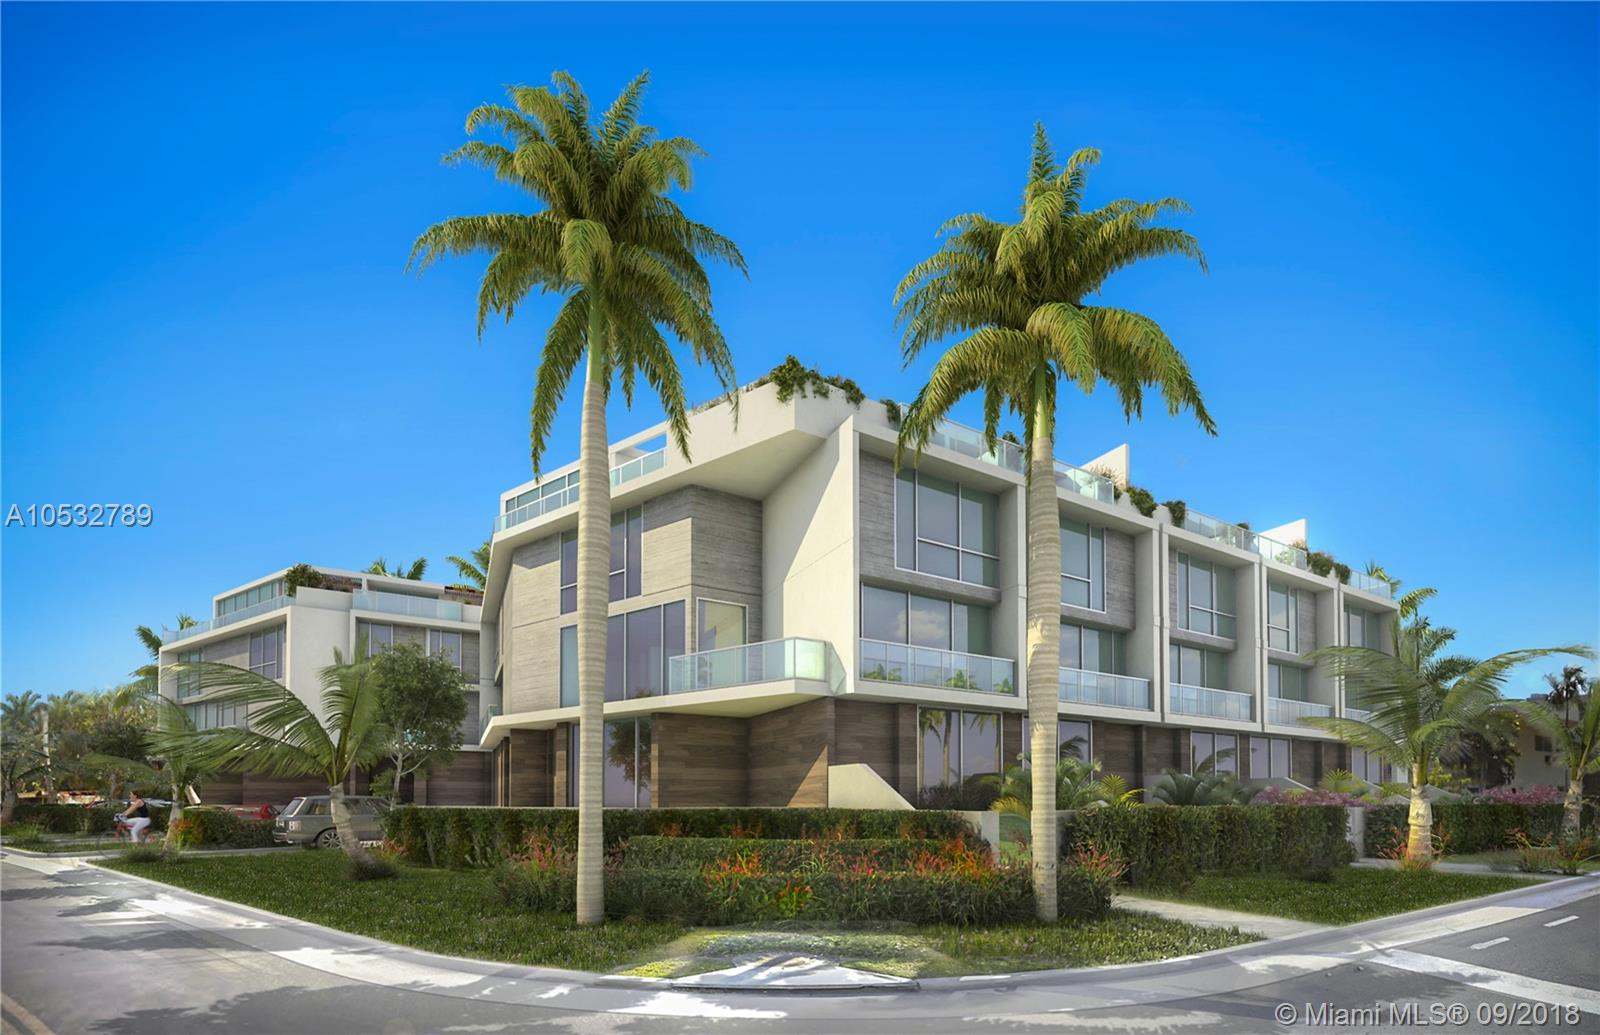 9890 E bay harbor drive #7 For Sale A10532789, FL